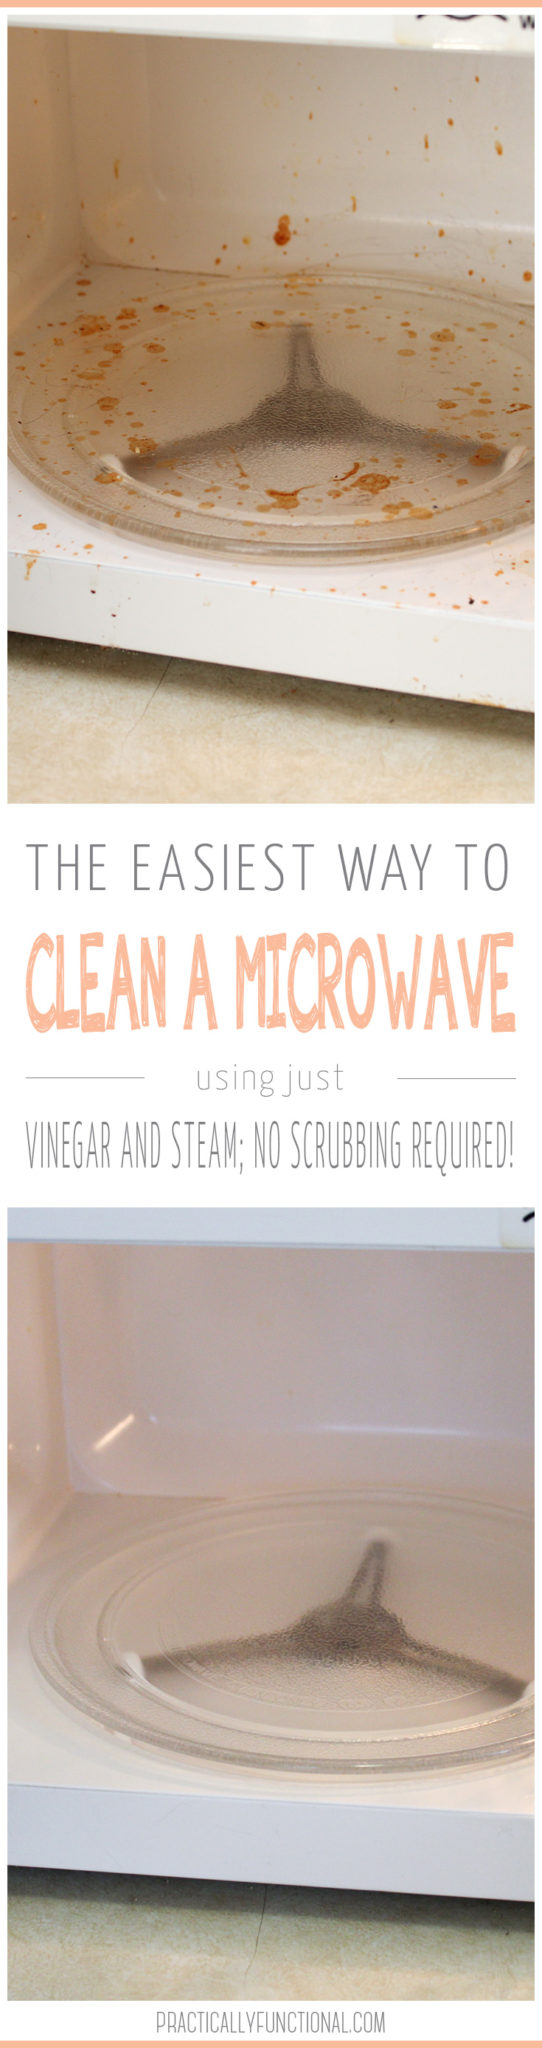 Clean a microwave in minutes! All you need is vinegar and water, no scrubbing required!